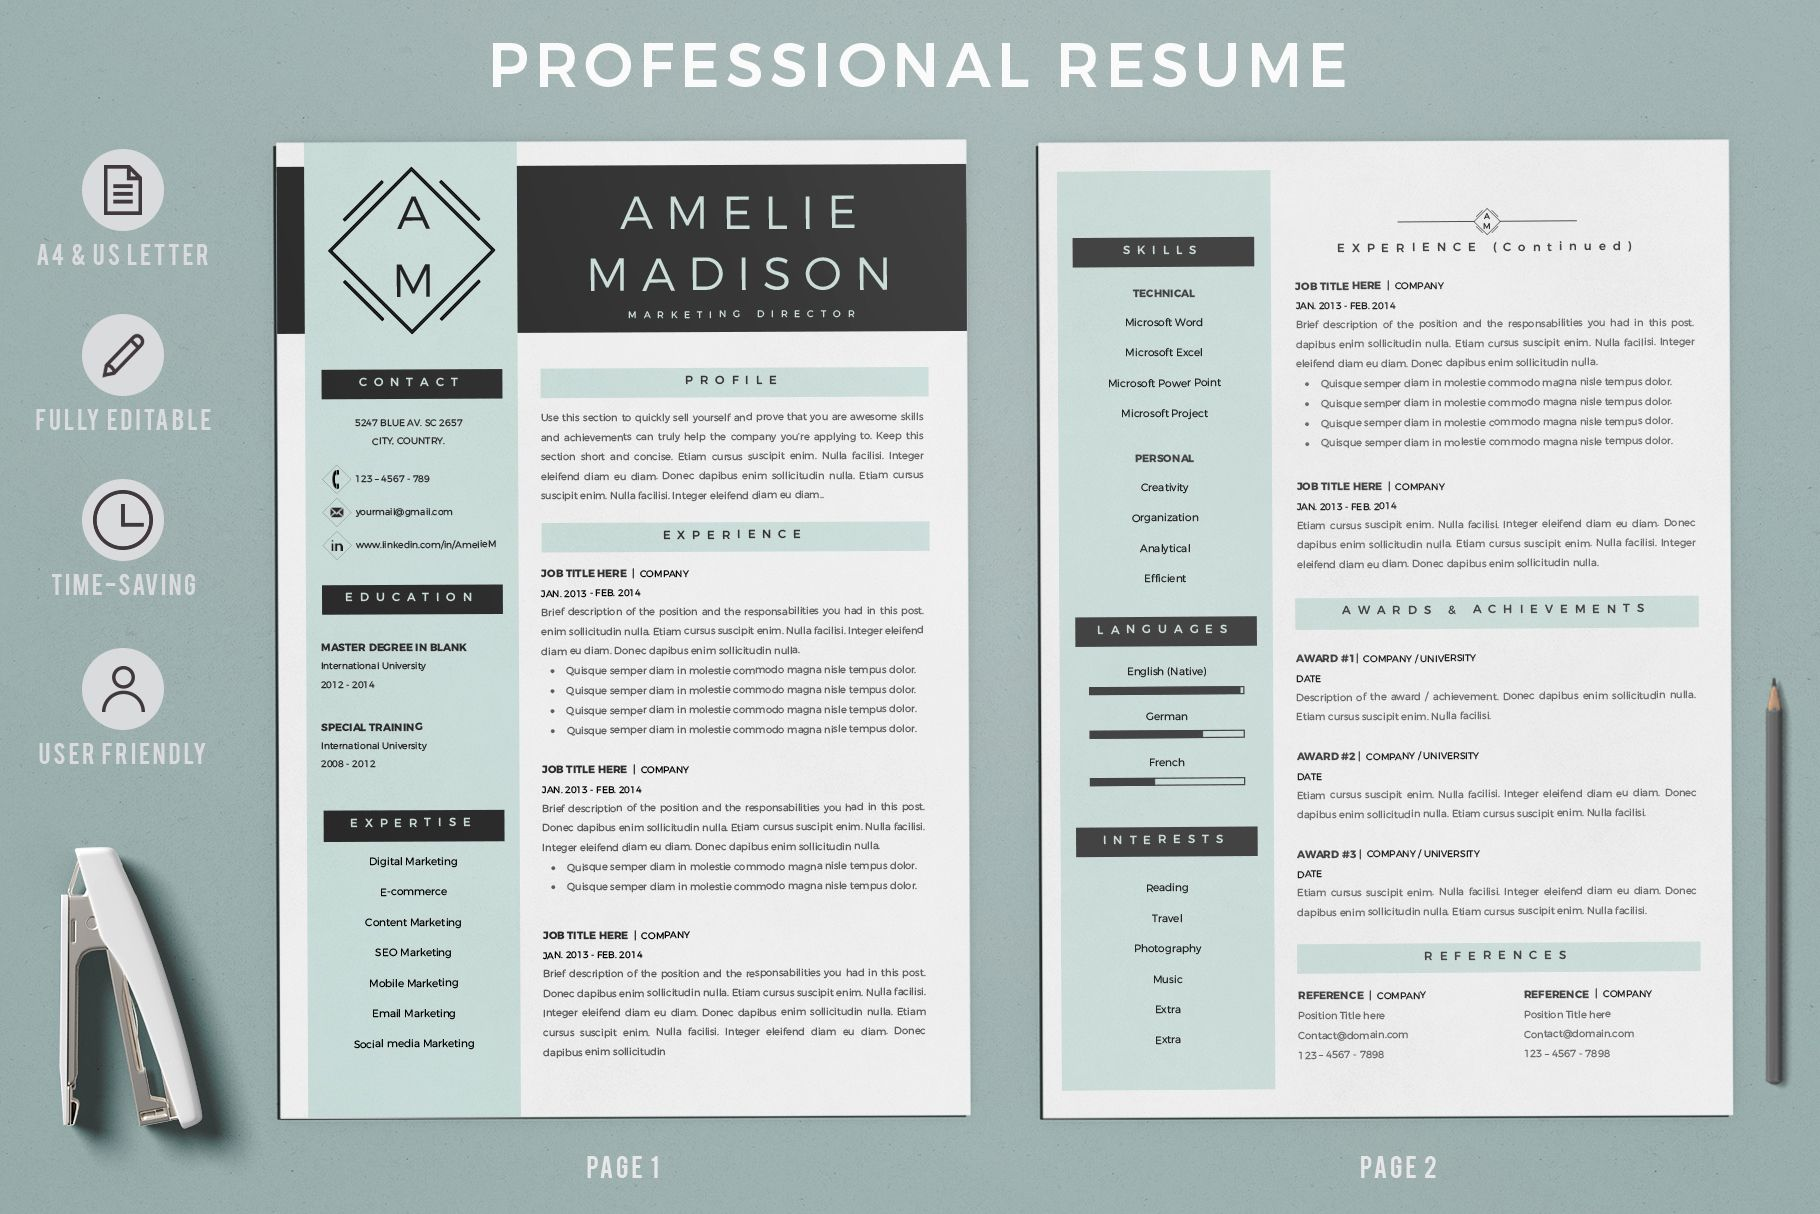 Creative Resume Templates For Ms Word And Mac Pages Professional Resume Templates And Matching Cov Marketing Resume Cover Letter Format Resume Design Template